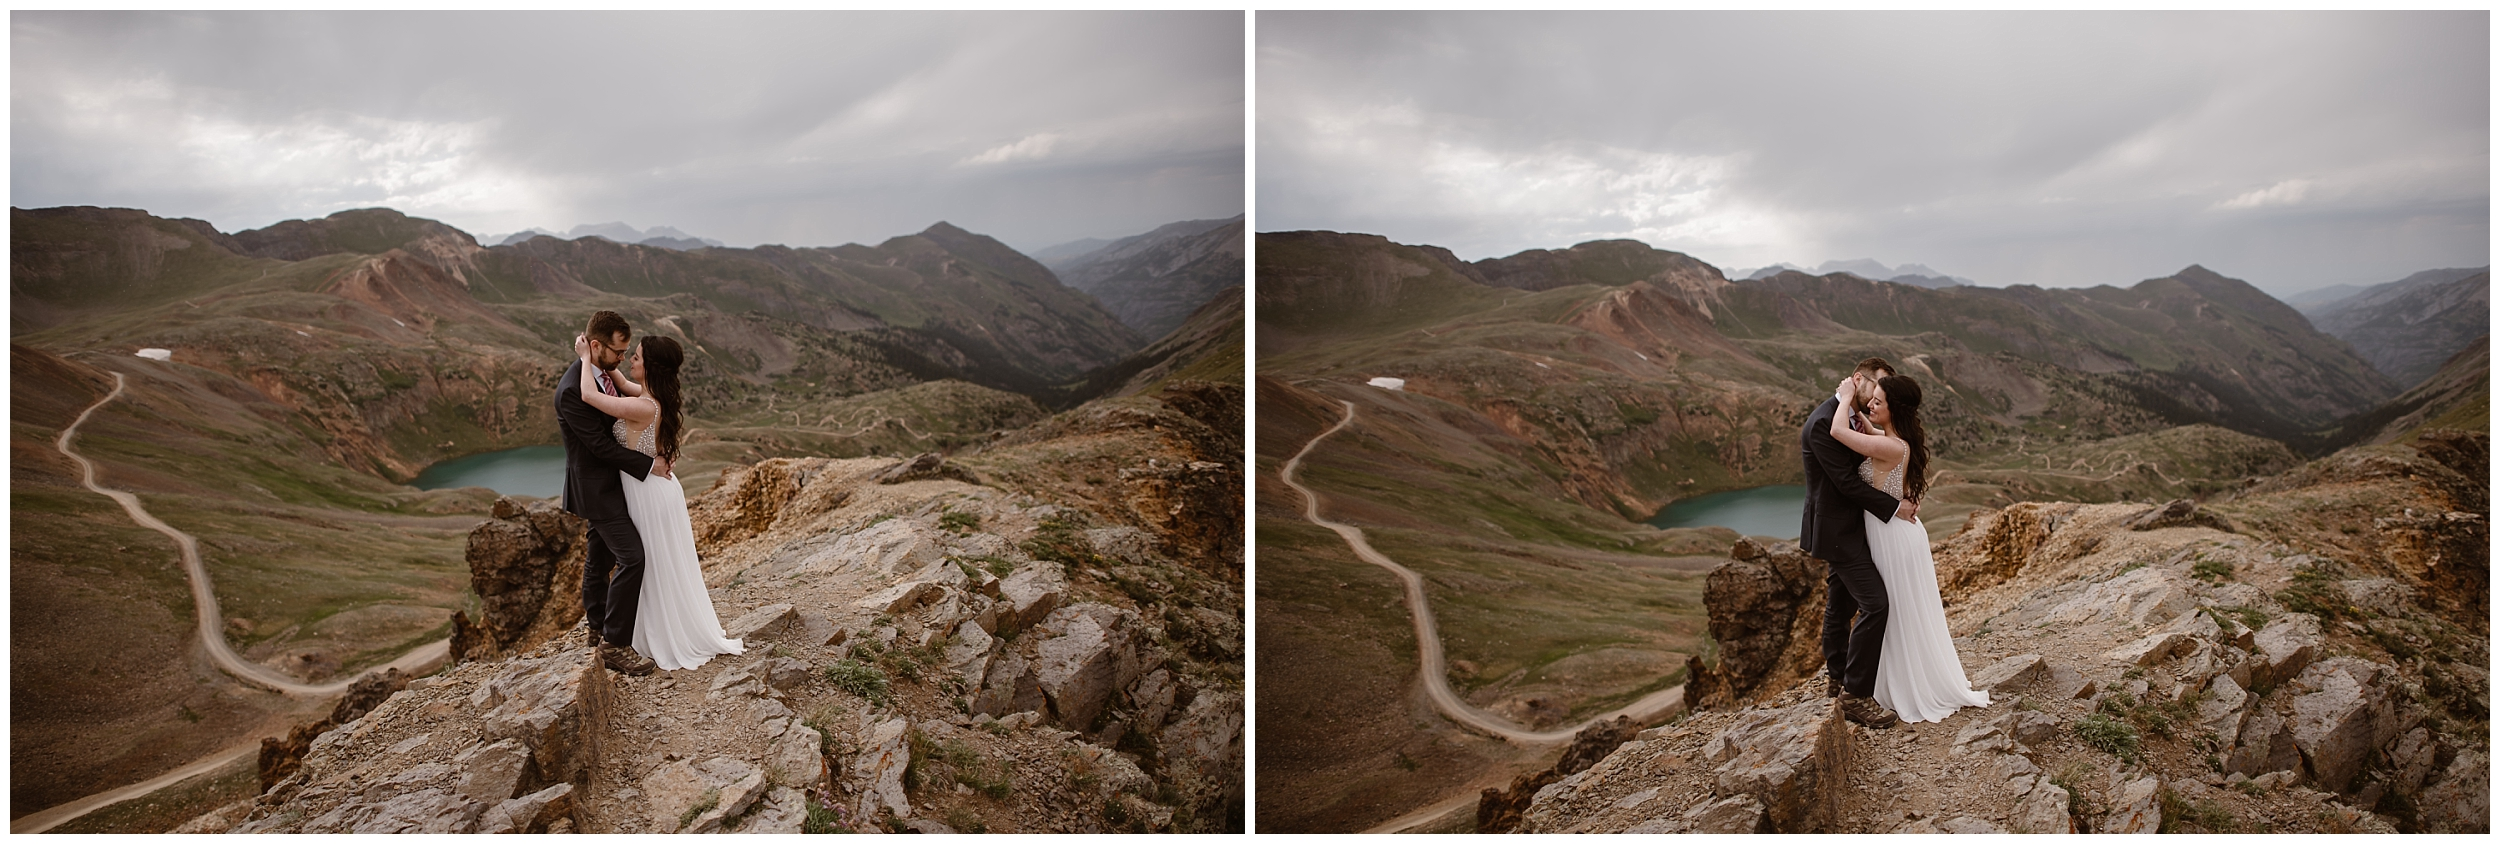 These side-by-side elopement pictures captured by Adventure Instead show the bride and groom, Katie and Logan, as they embrace at the top of a mountain peak. Beneath them, a turquoise alpine lake is at the bottom of the basin, To the left of them near the bottom of the basin is an off-road 4x4 trail that their Jeep wedding car drove them up to get to this spot.